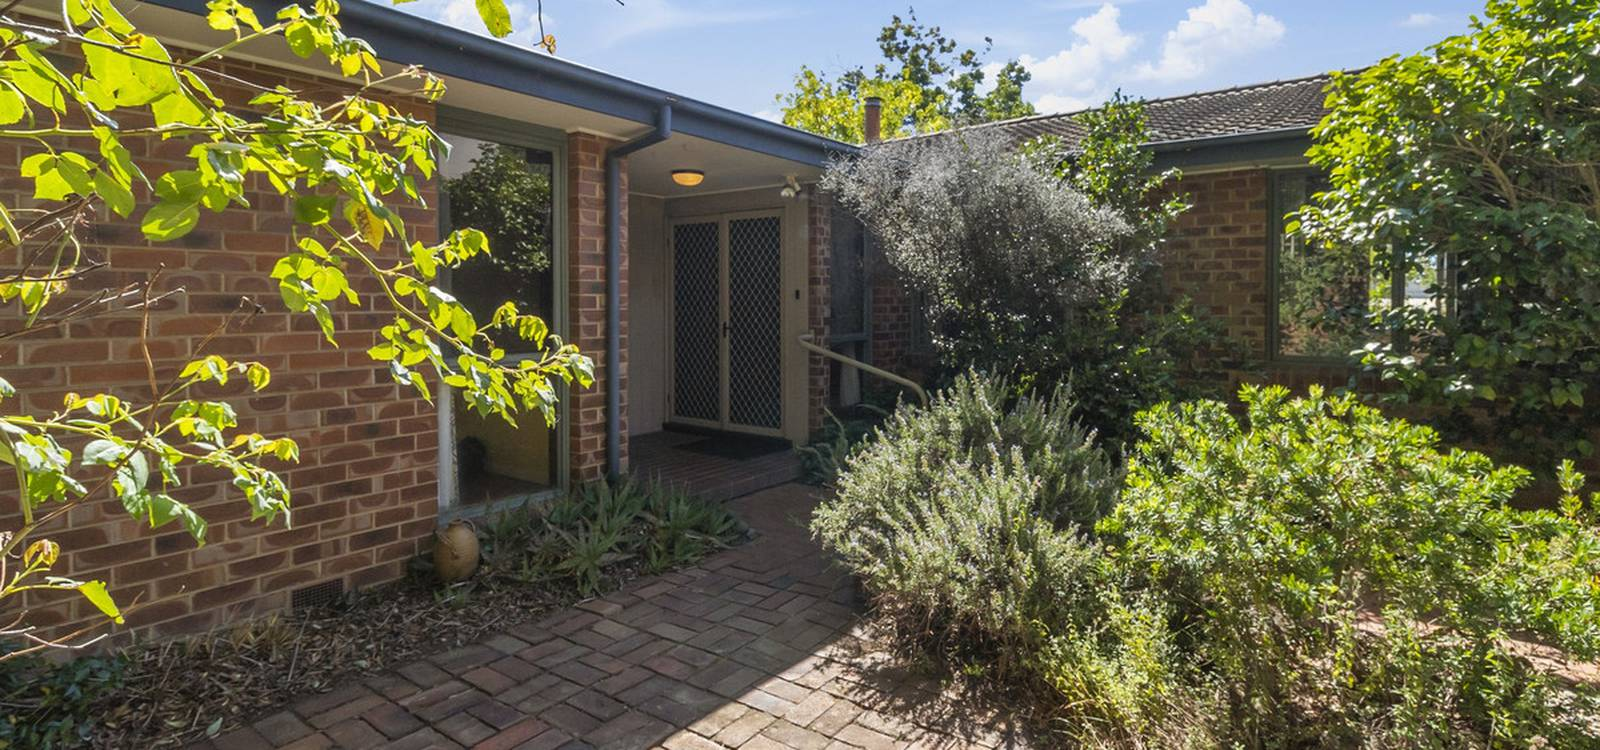 56 Investigator Street RED HILL, ACT 2603 - photo 1